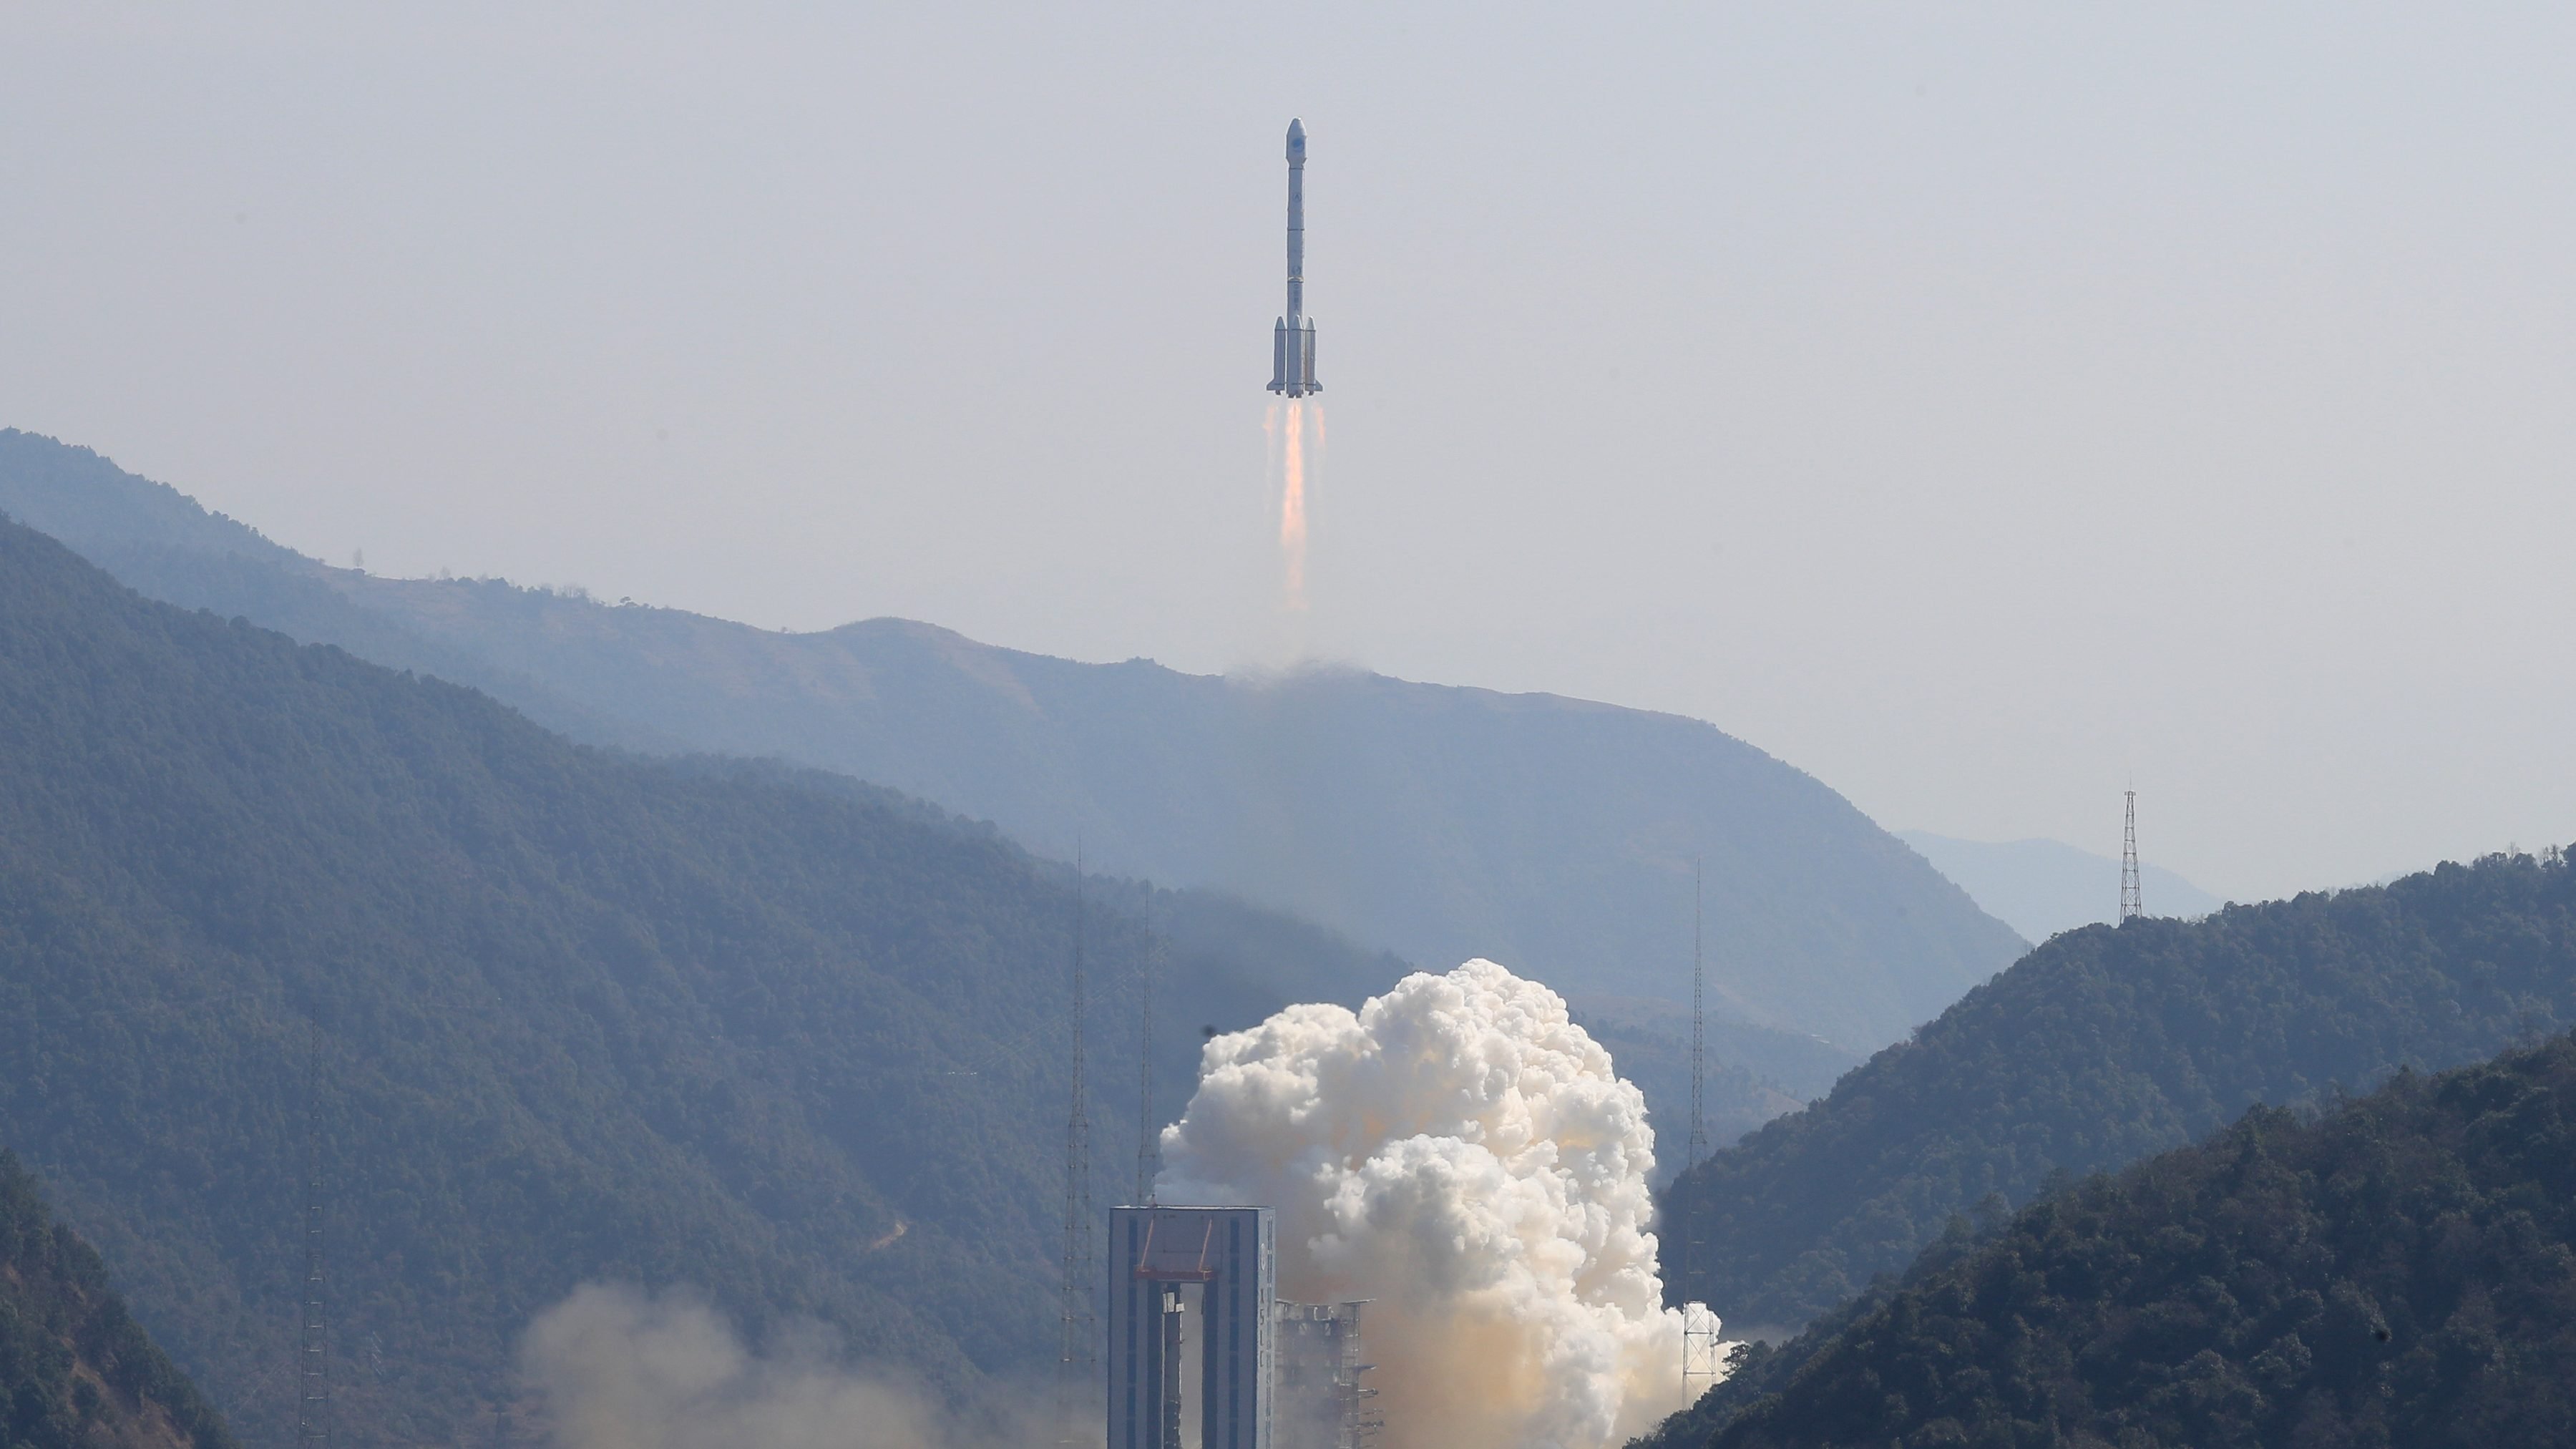 Two BeiDou navigation satellites via a single carrier rocket take off at the Xichang Satellite Launch Center, Sichuan province, China February 12, 2018. Picture taken February 12, 2018.